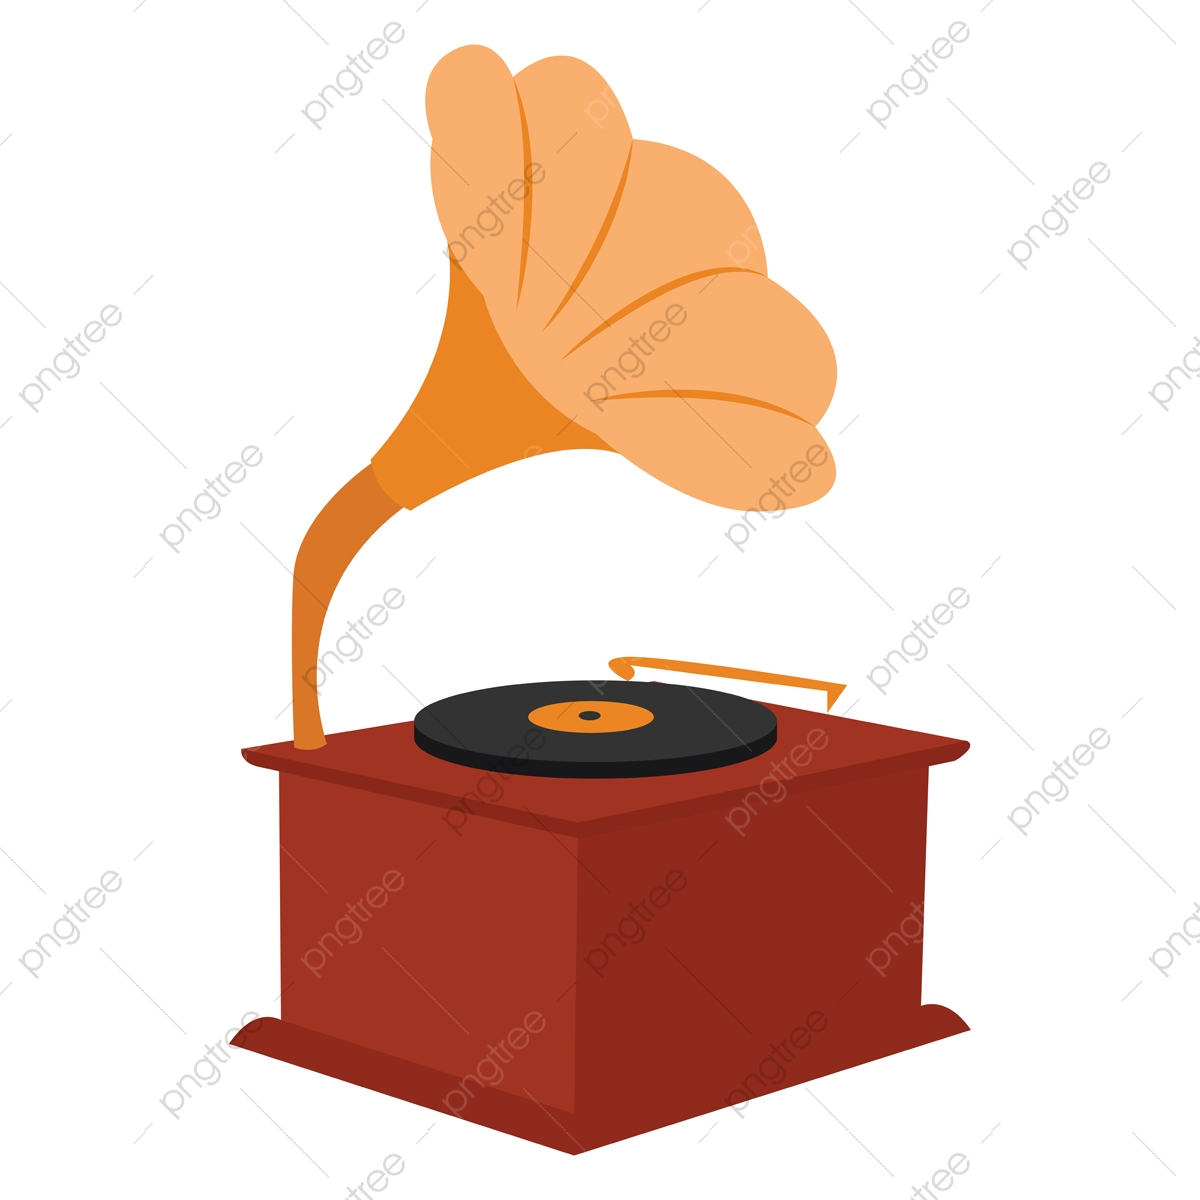 gramophone png vector psd and clipart with transparent background for free download pngtree https pngtree com freepng golden gramophone illustration vector on white background 5293380 html